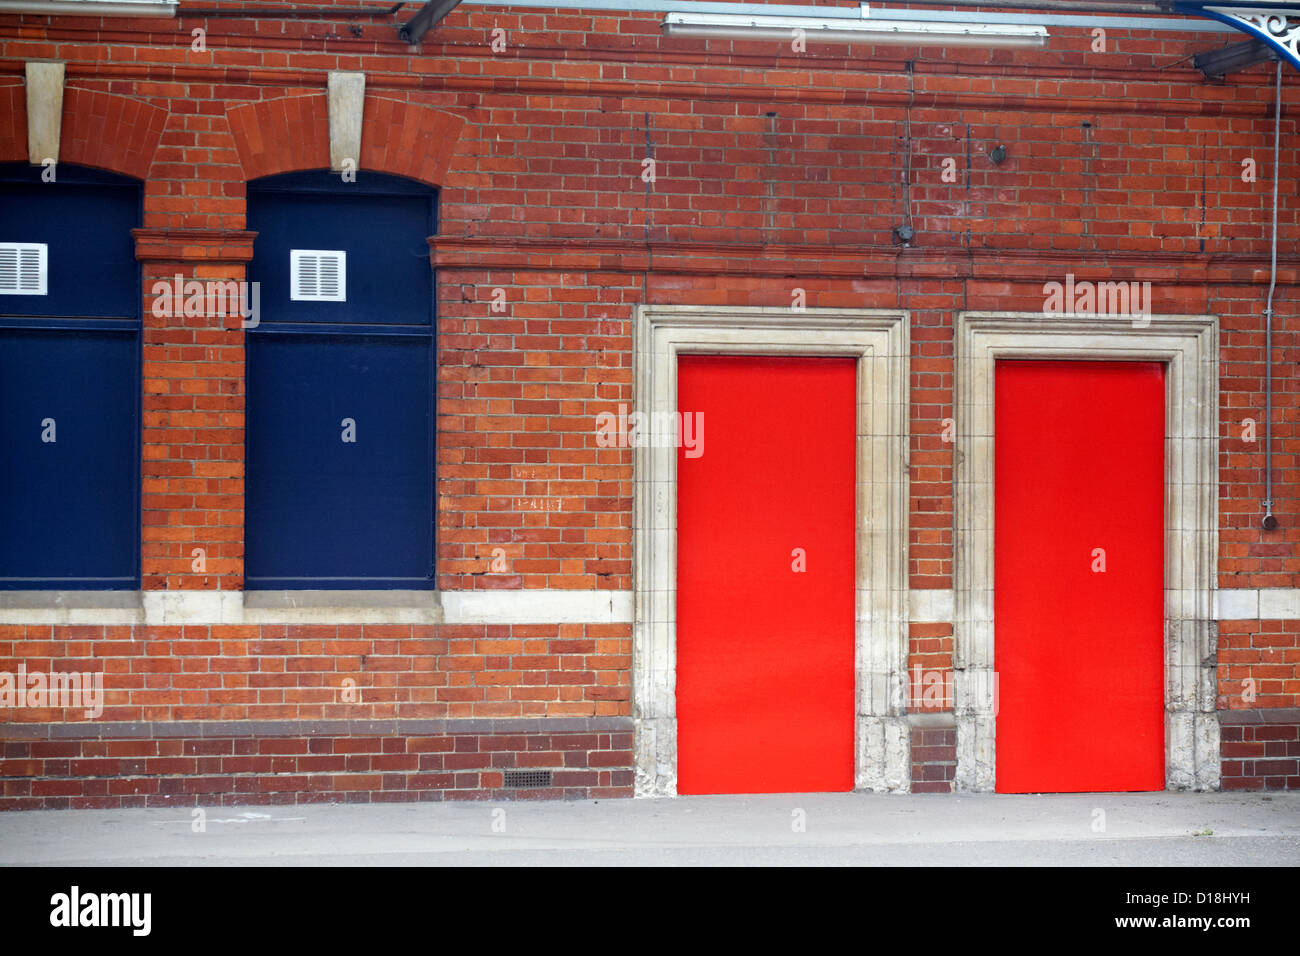 Two red doors on platform of railway station - Stock Image